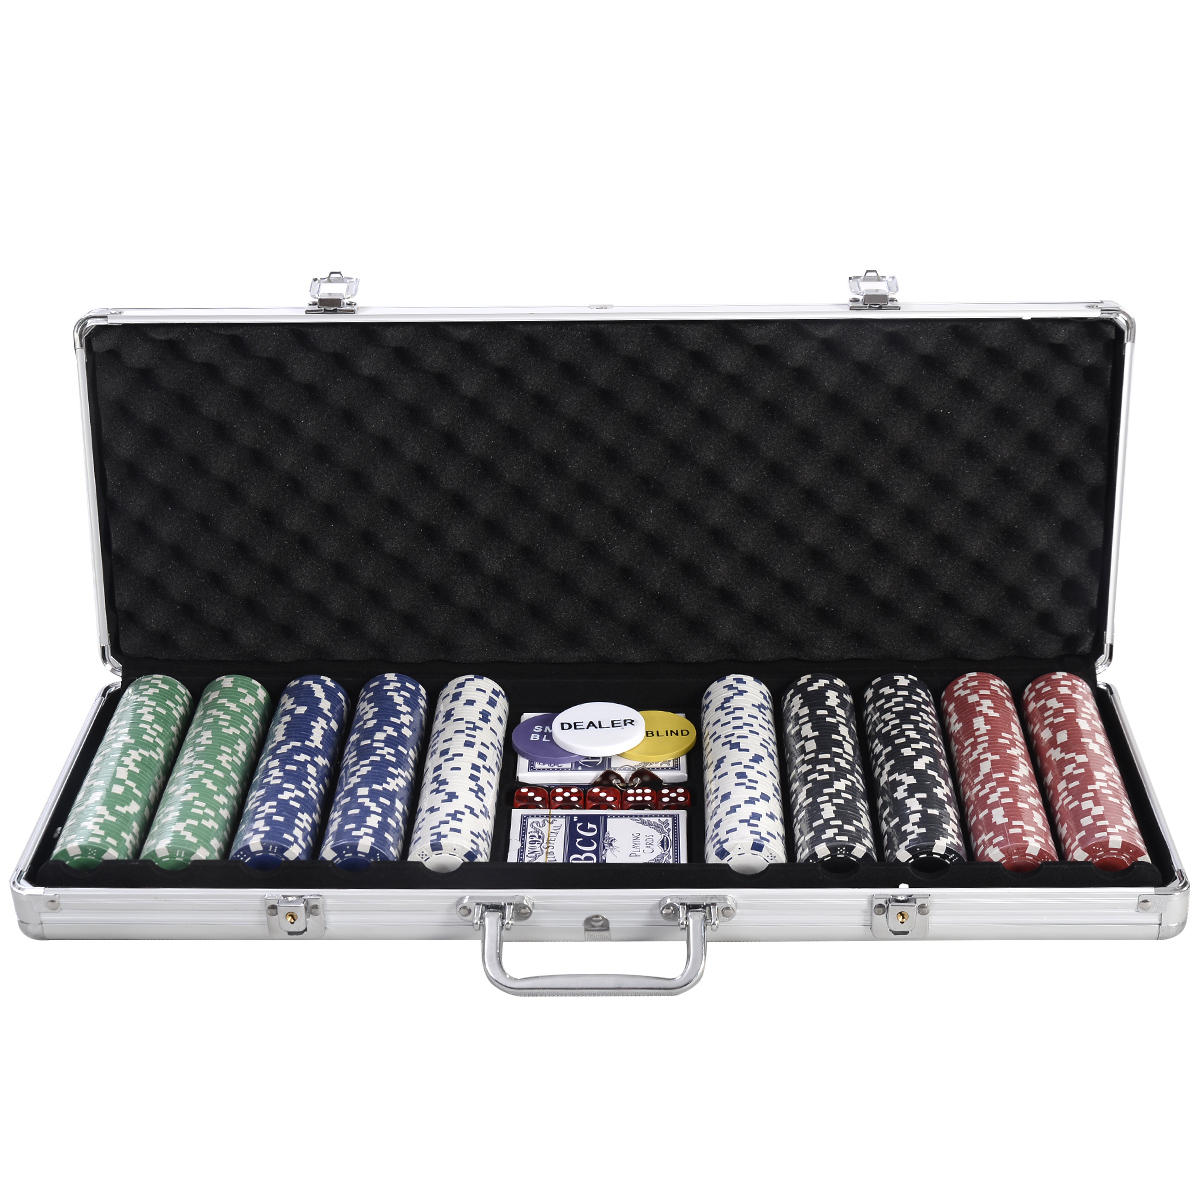 Costway New 500 Chips Poker Dice Chip Set Texas Hold'em Cards W  Silver Aluminum Case by Costway